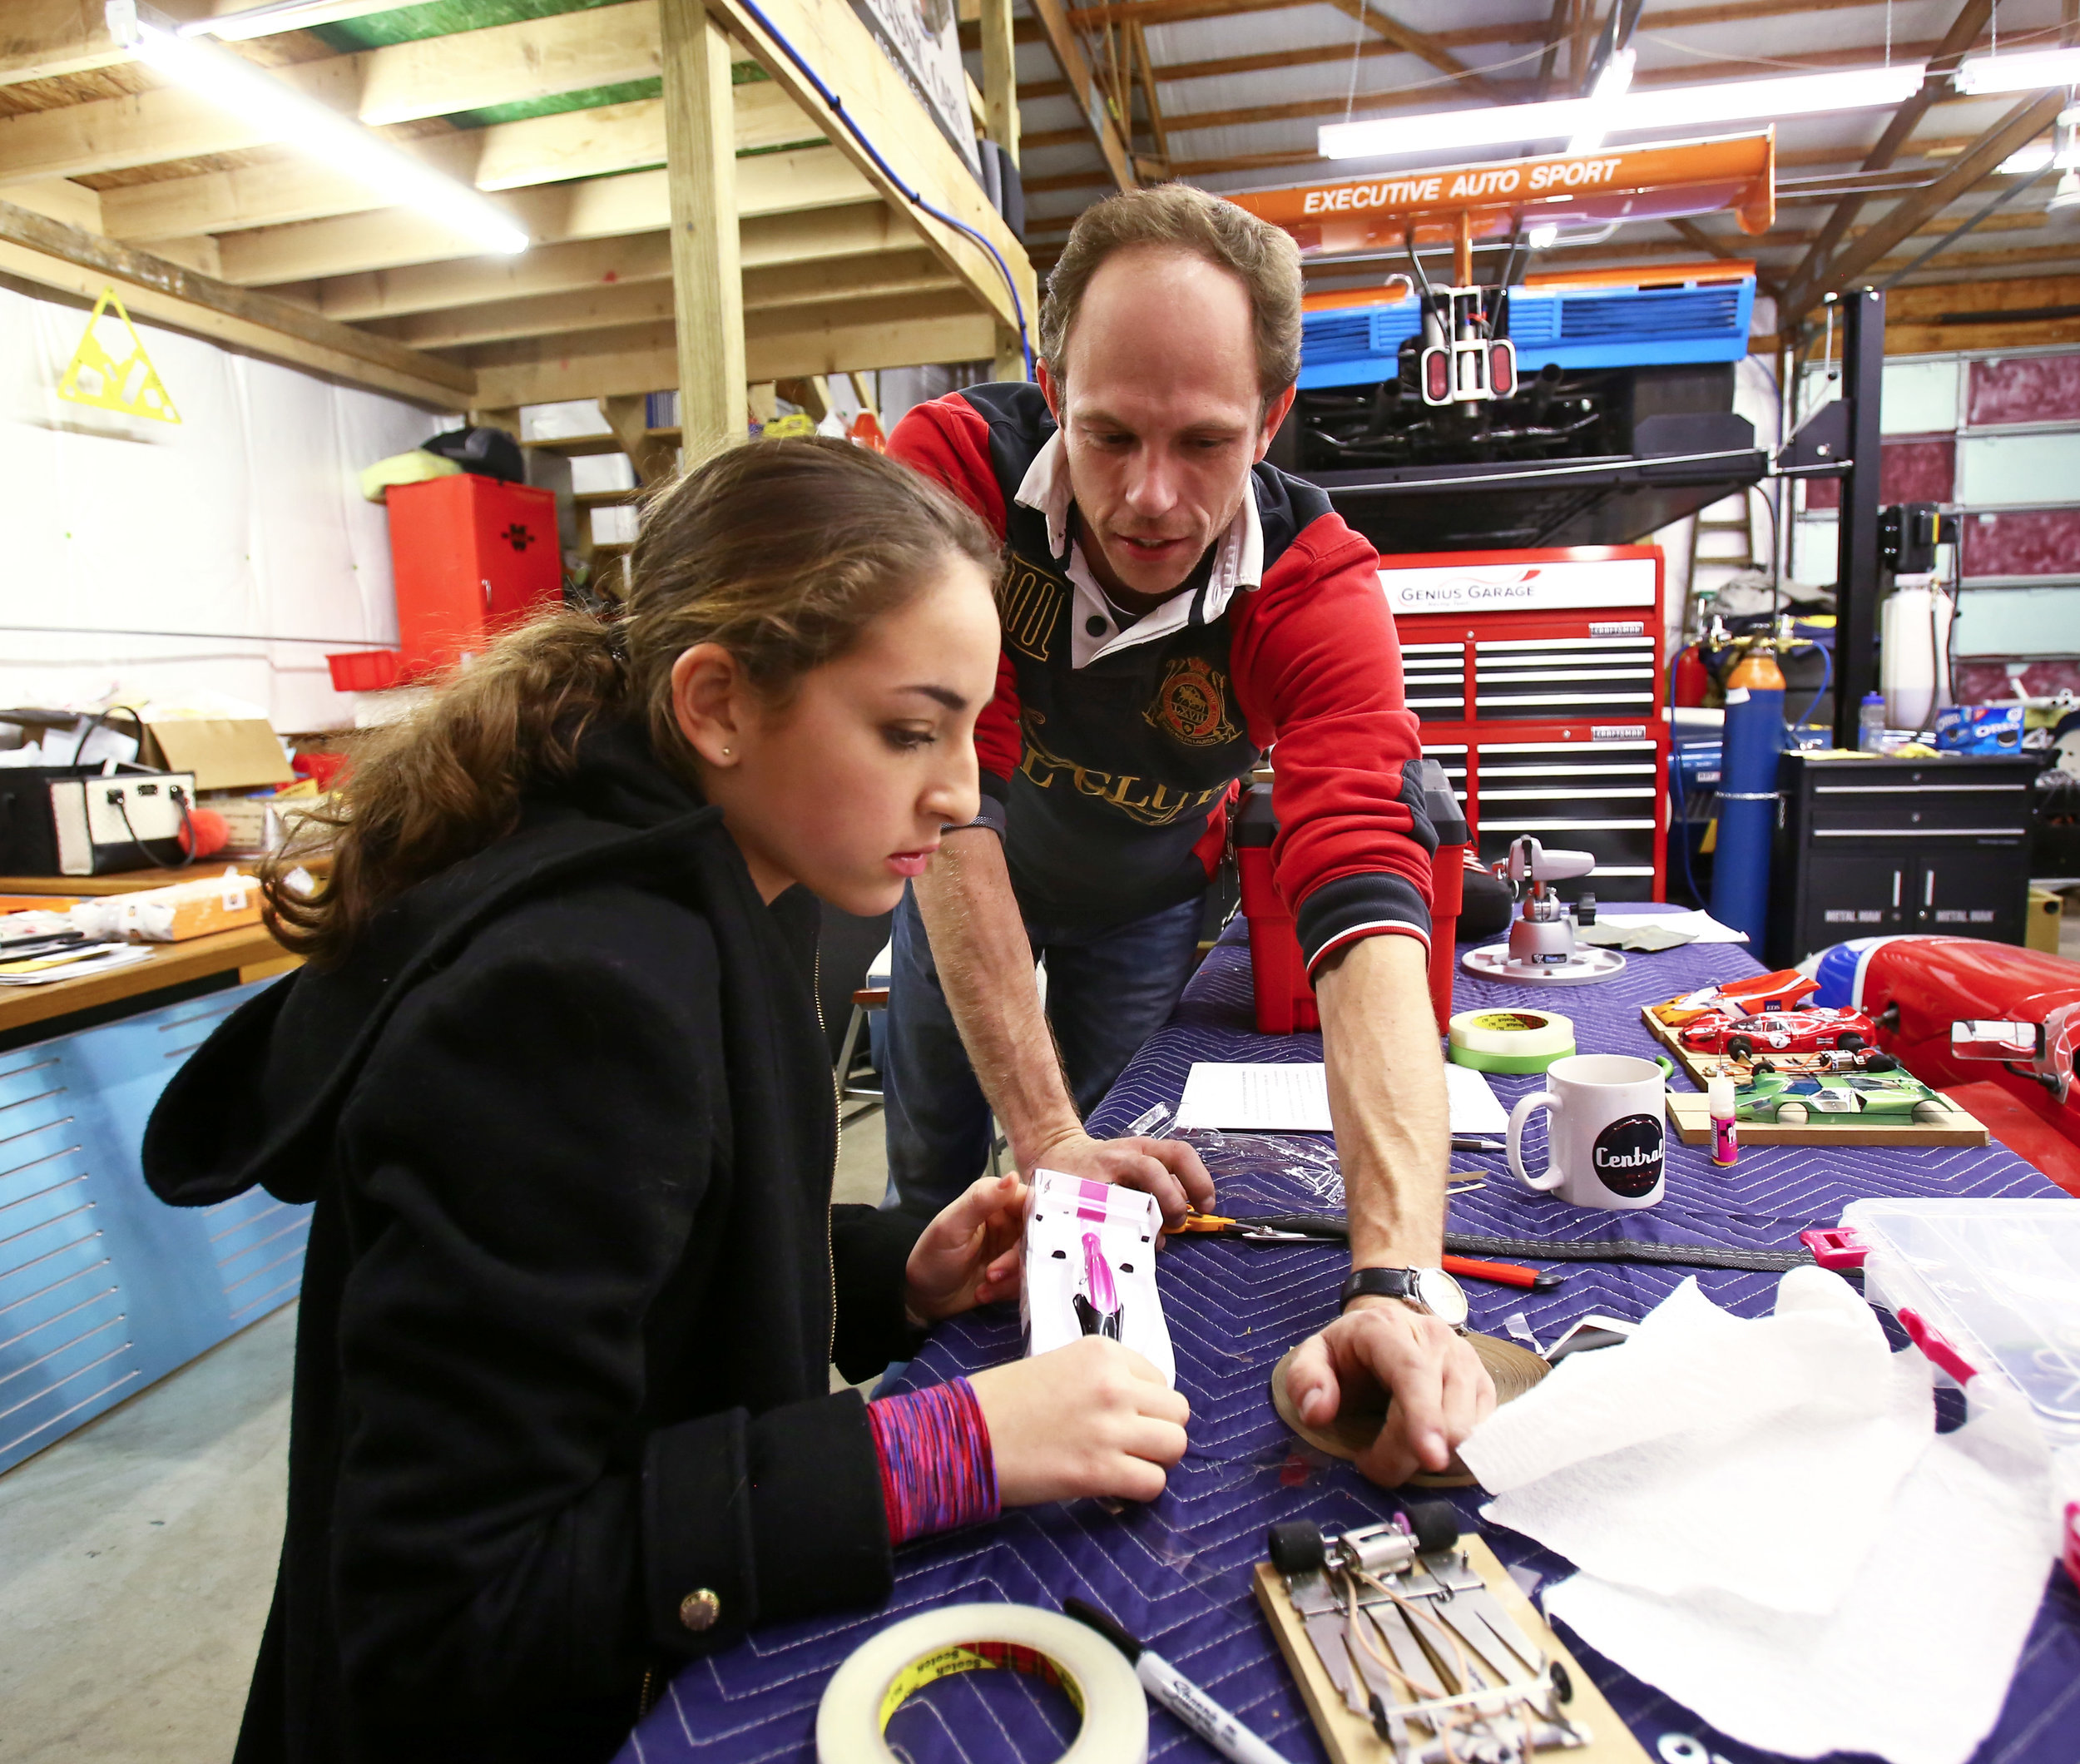 President of Genius Garage Casey Putsch, right, gives Kenna Edwards of Sylvania pointers on how give her slot car some extra stability on the track at the Genius Garage Racing Team's garage located in the Sylvania Business Plaza on W. Central Avenue in Sylvania, Oh. on Monday, Dec. 12, 2016.